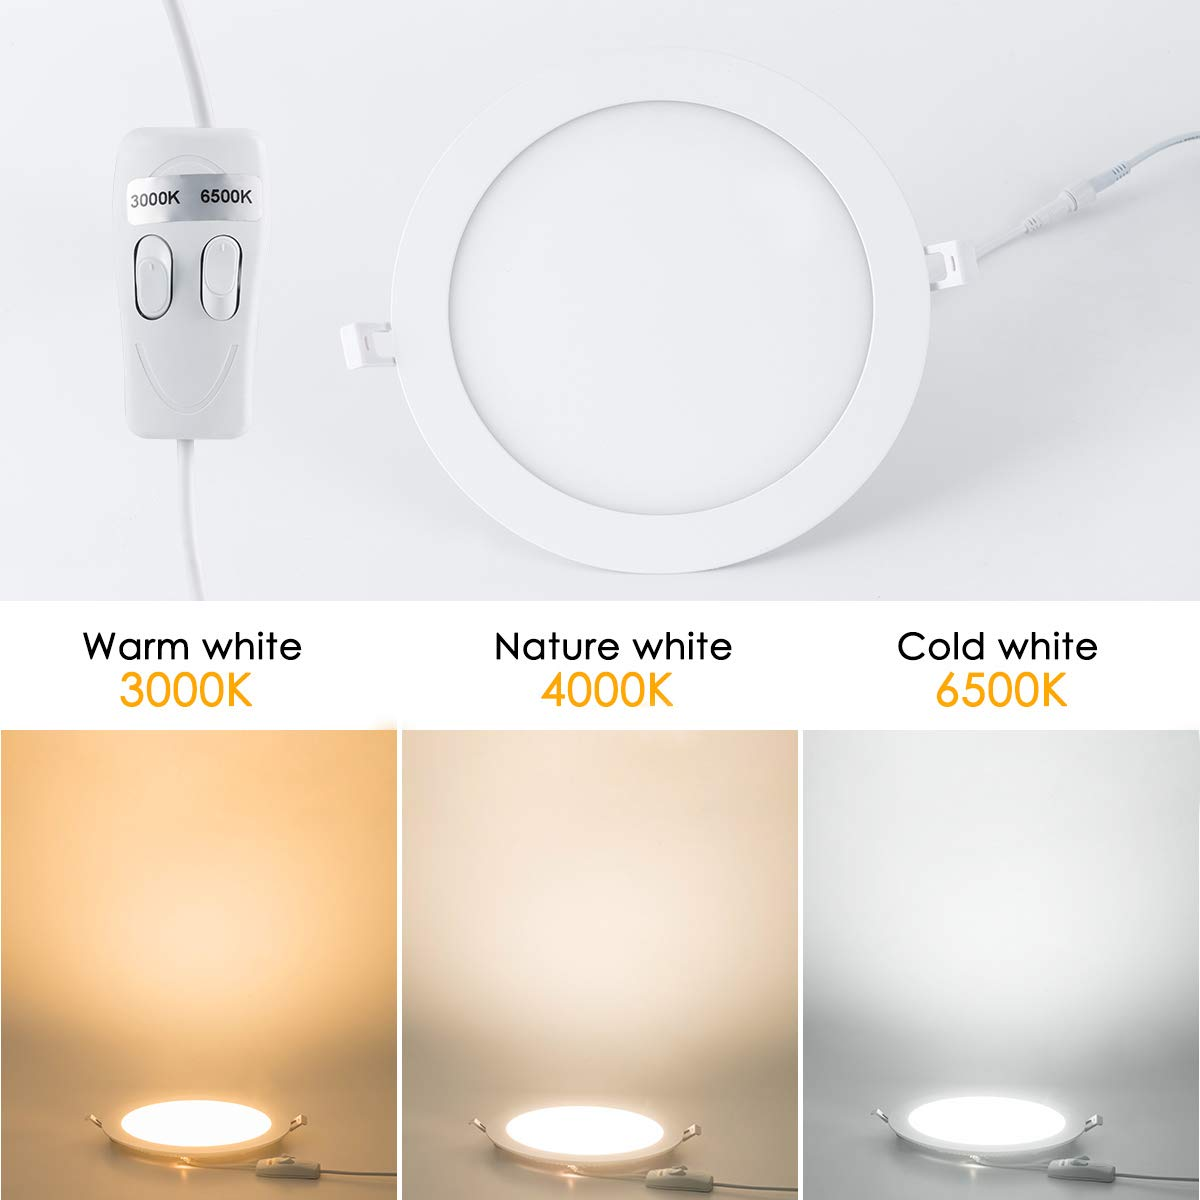 7 inch ultra thin round led panel light fcc certified recessed ceiling down lighting 3 colors cri80 6500k 4000k 3000k 15w for office home